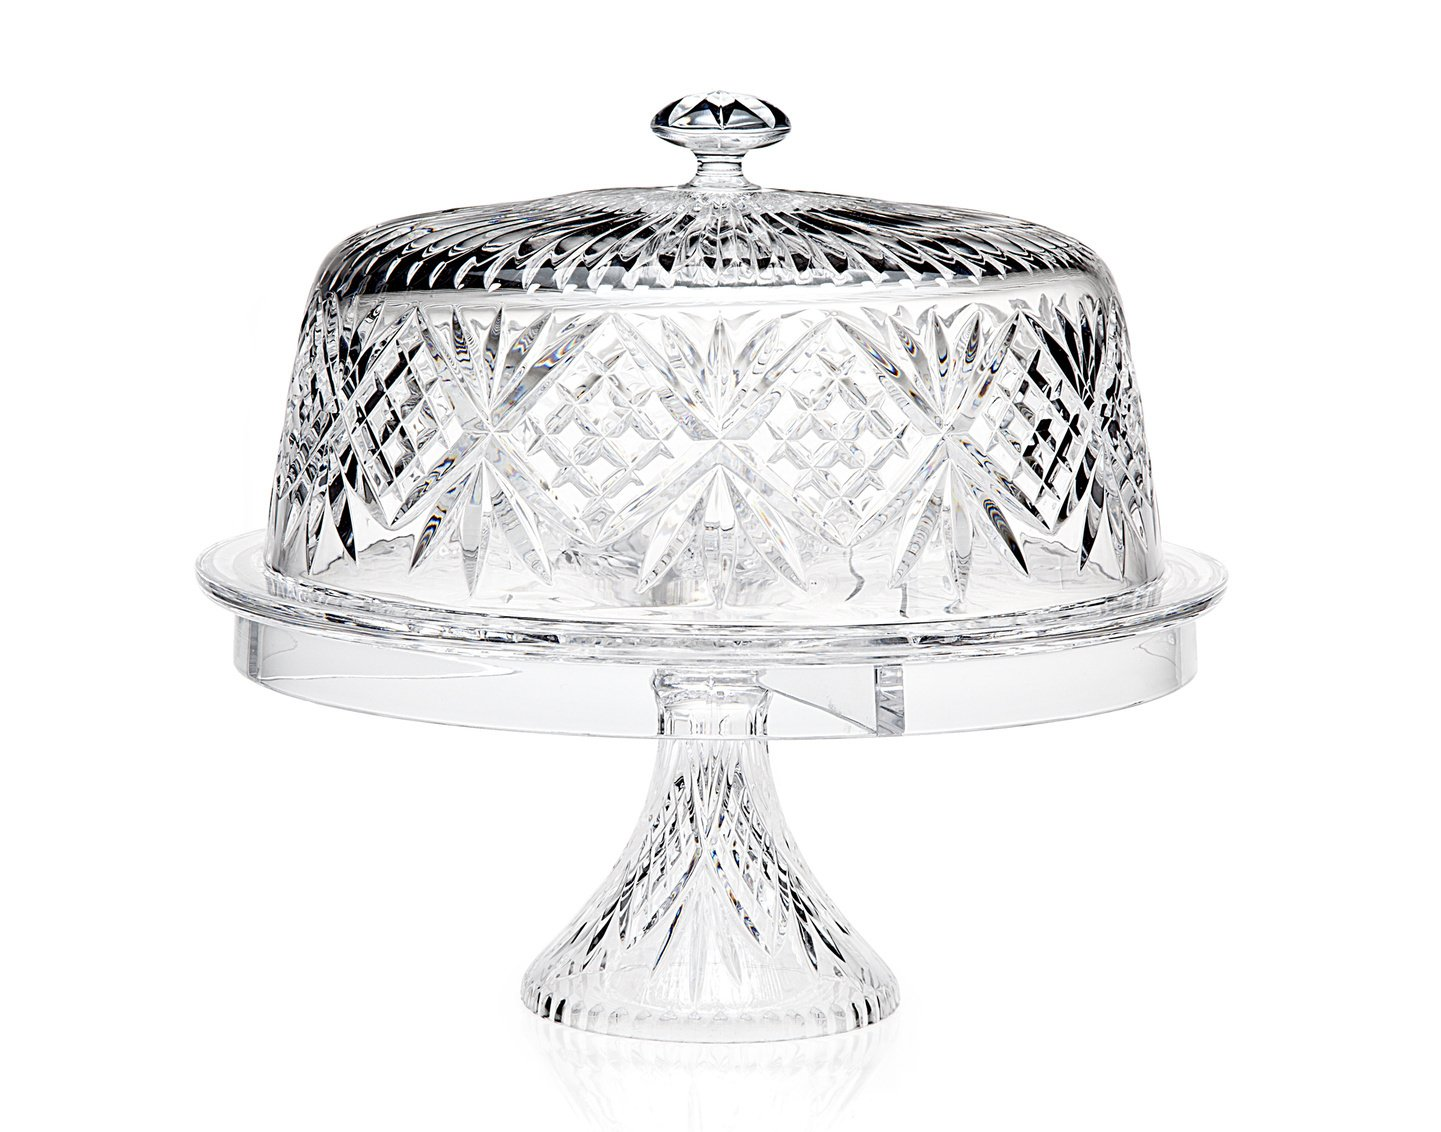 Godinger Glass 4-in 1 Multifunctional Cake -and-Dessert Serving Stand Bowl with Dome Lid Godinger Silver Art Co Ltd 25658